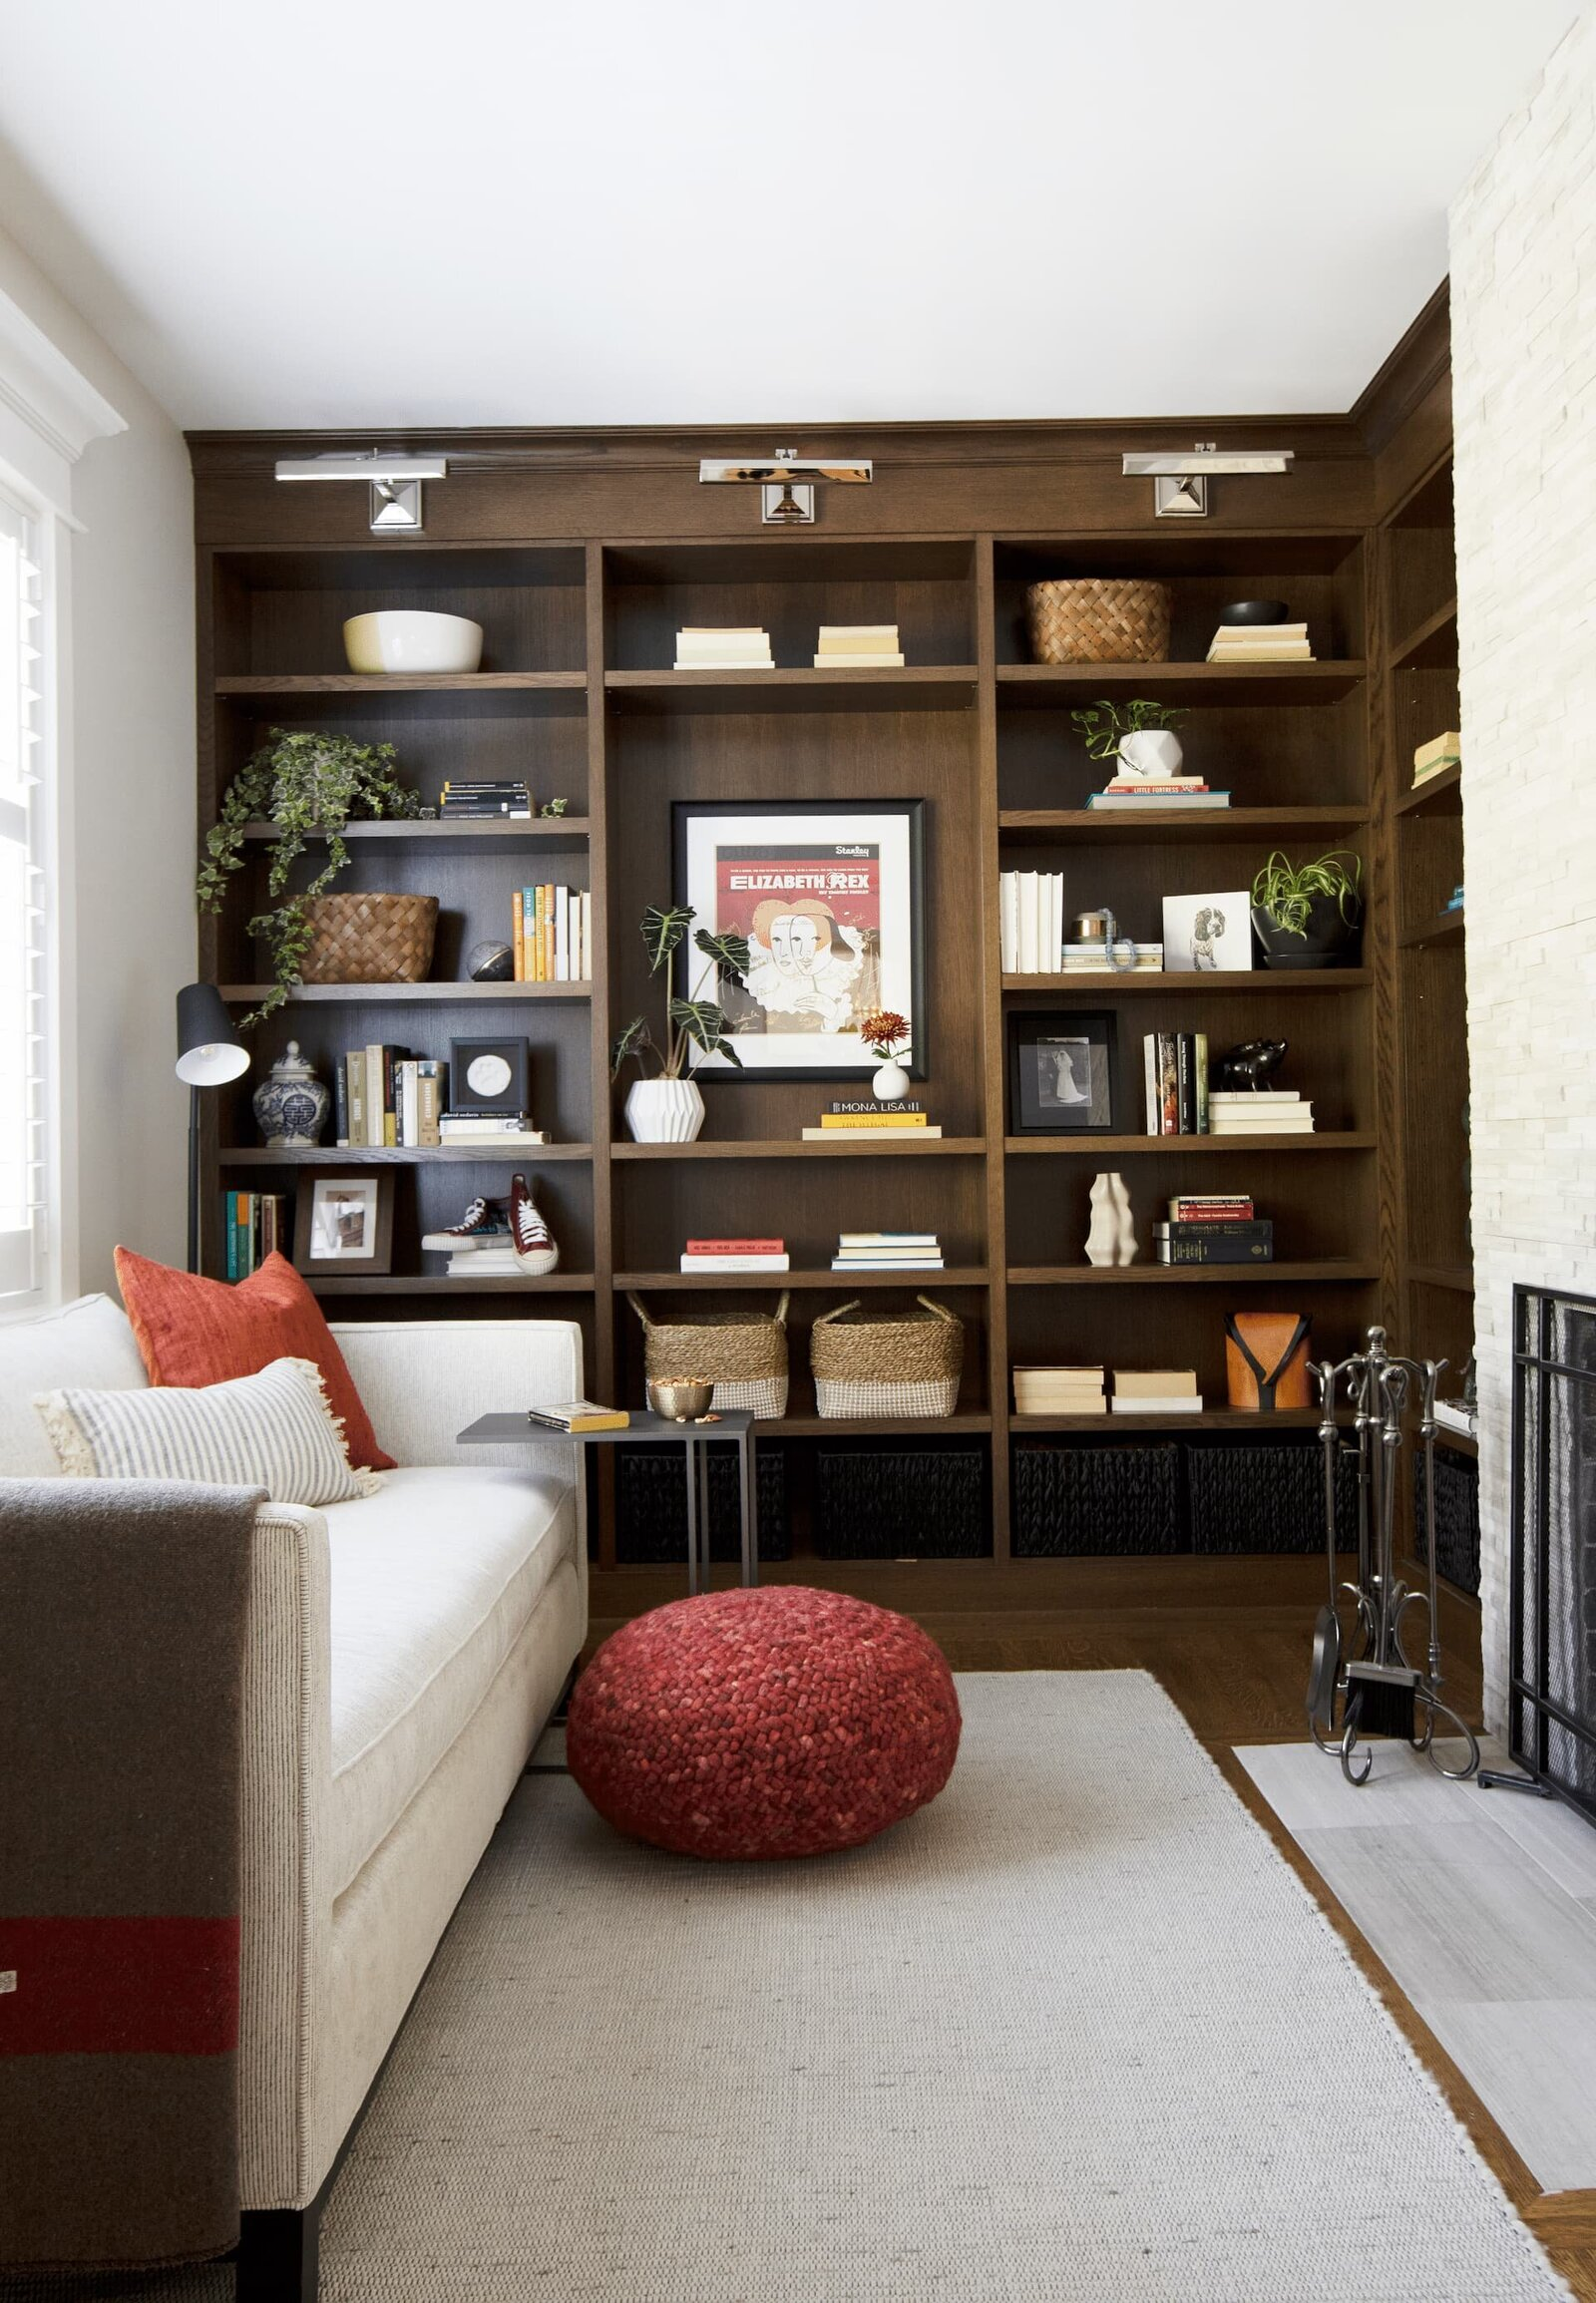 Granville Street l Den-Reading Room l Neutral Sofa, Fireplace, Dark Built-in with Accessories on Shelves